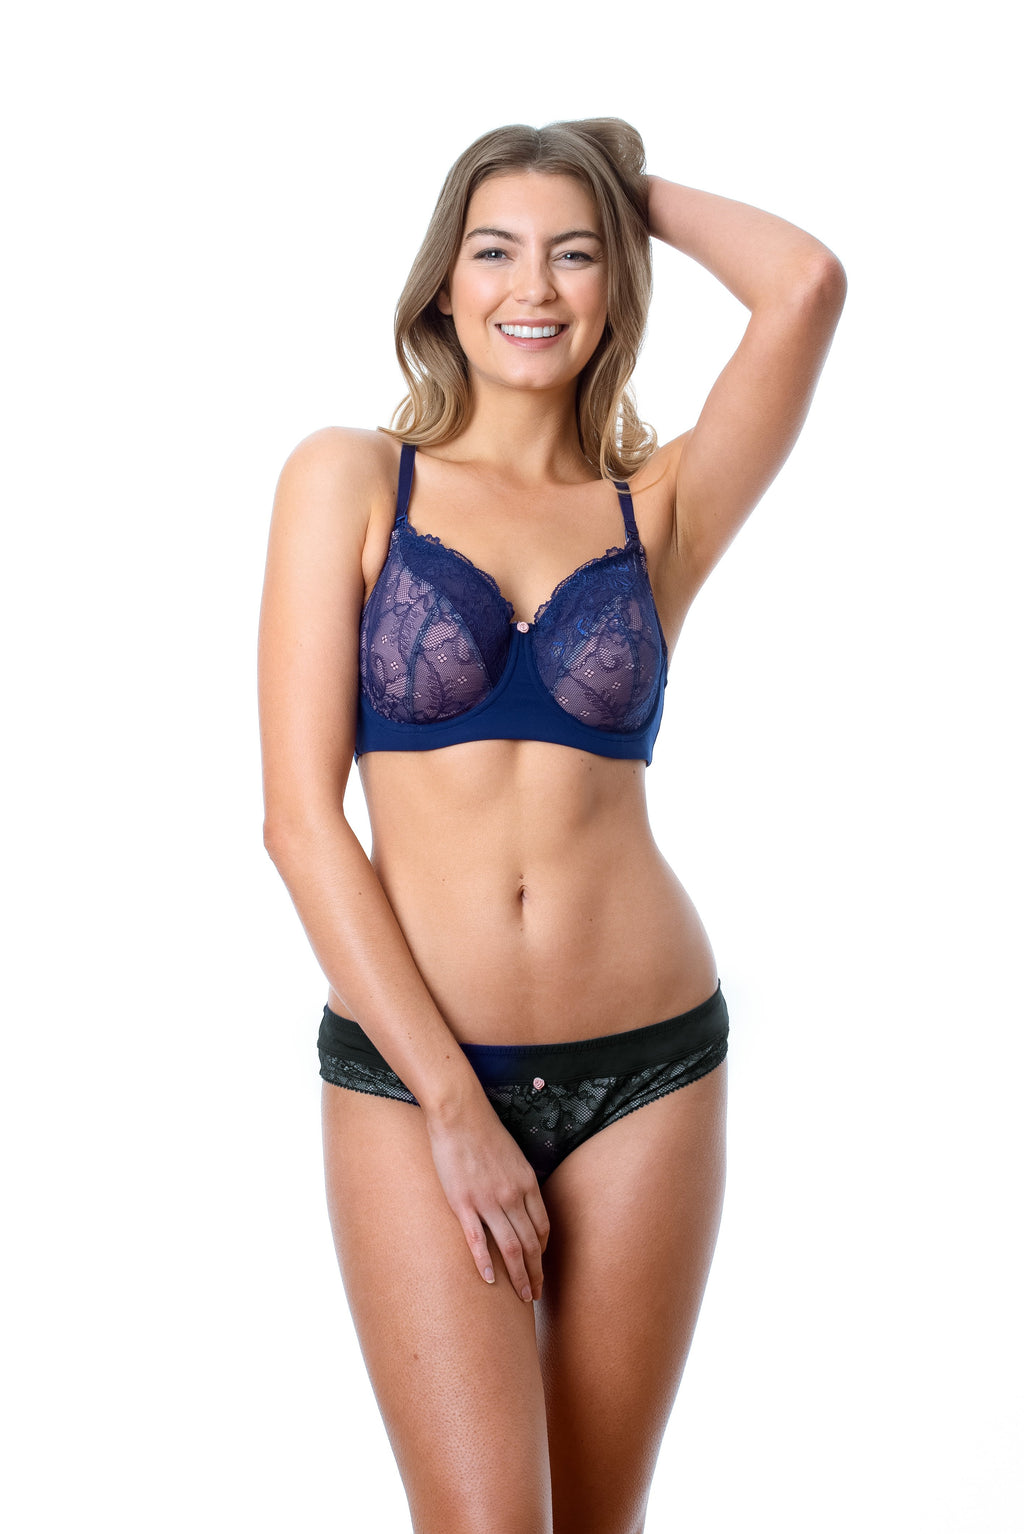 TEMPTATION NAVY NURSING BRA - FLEXI UNDERWIRE